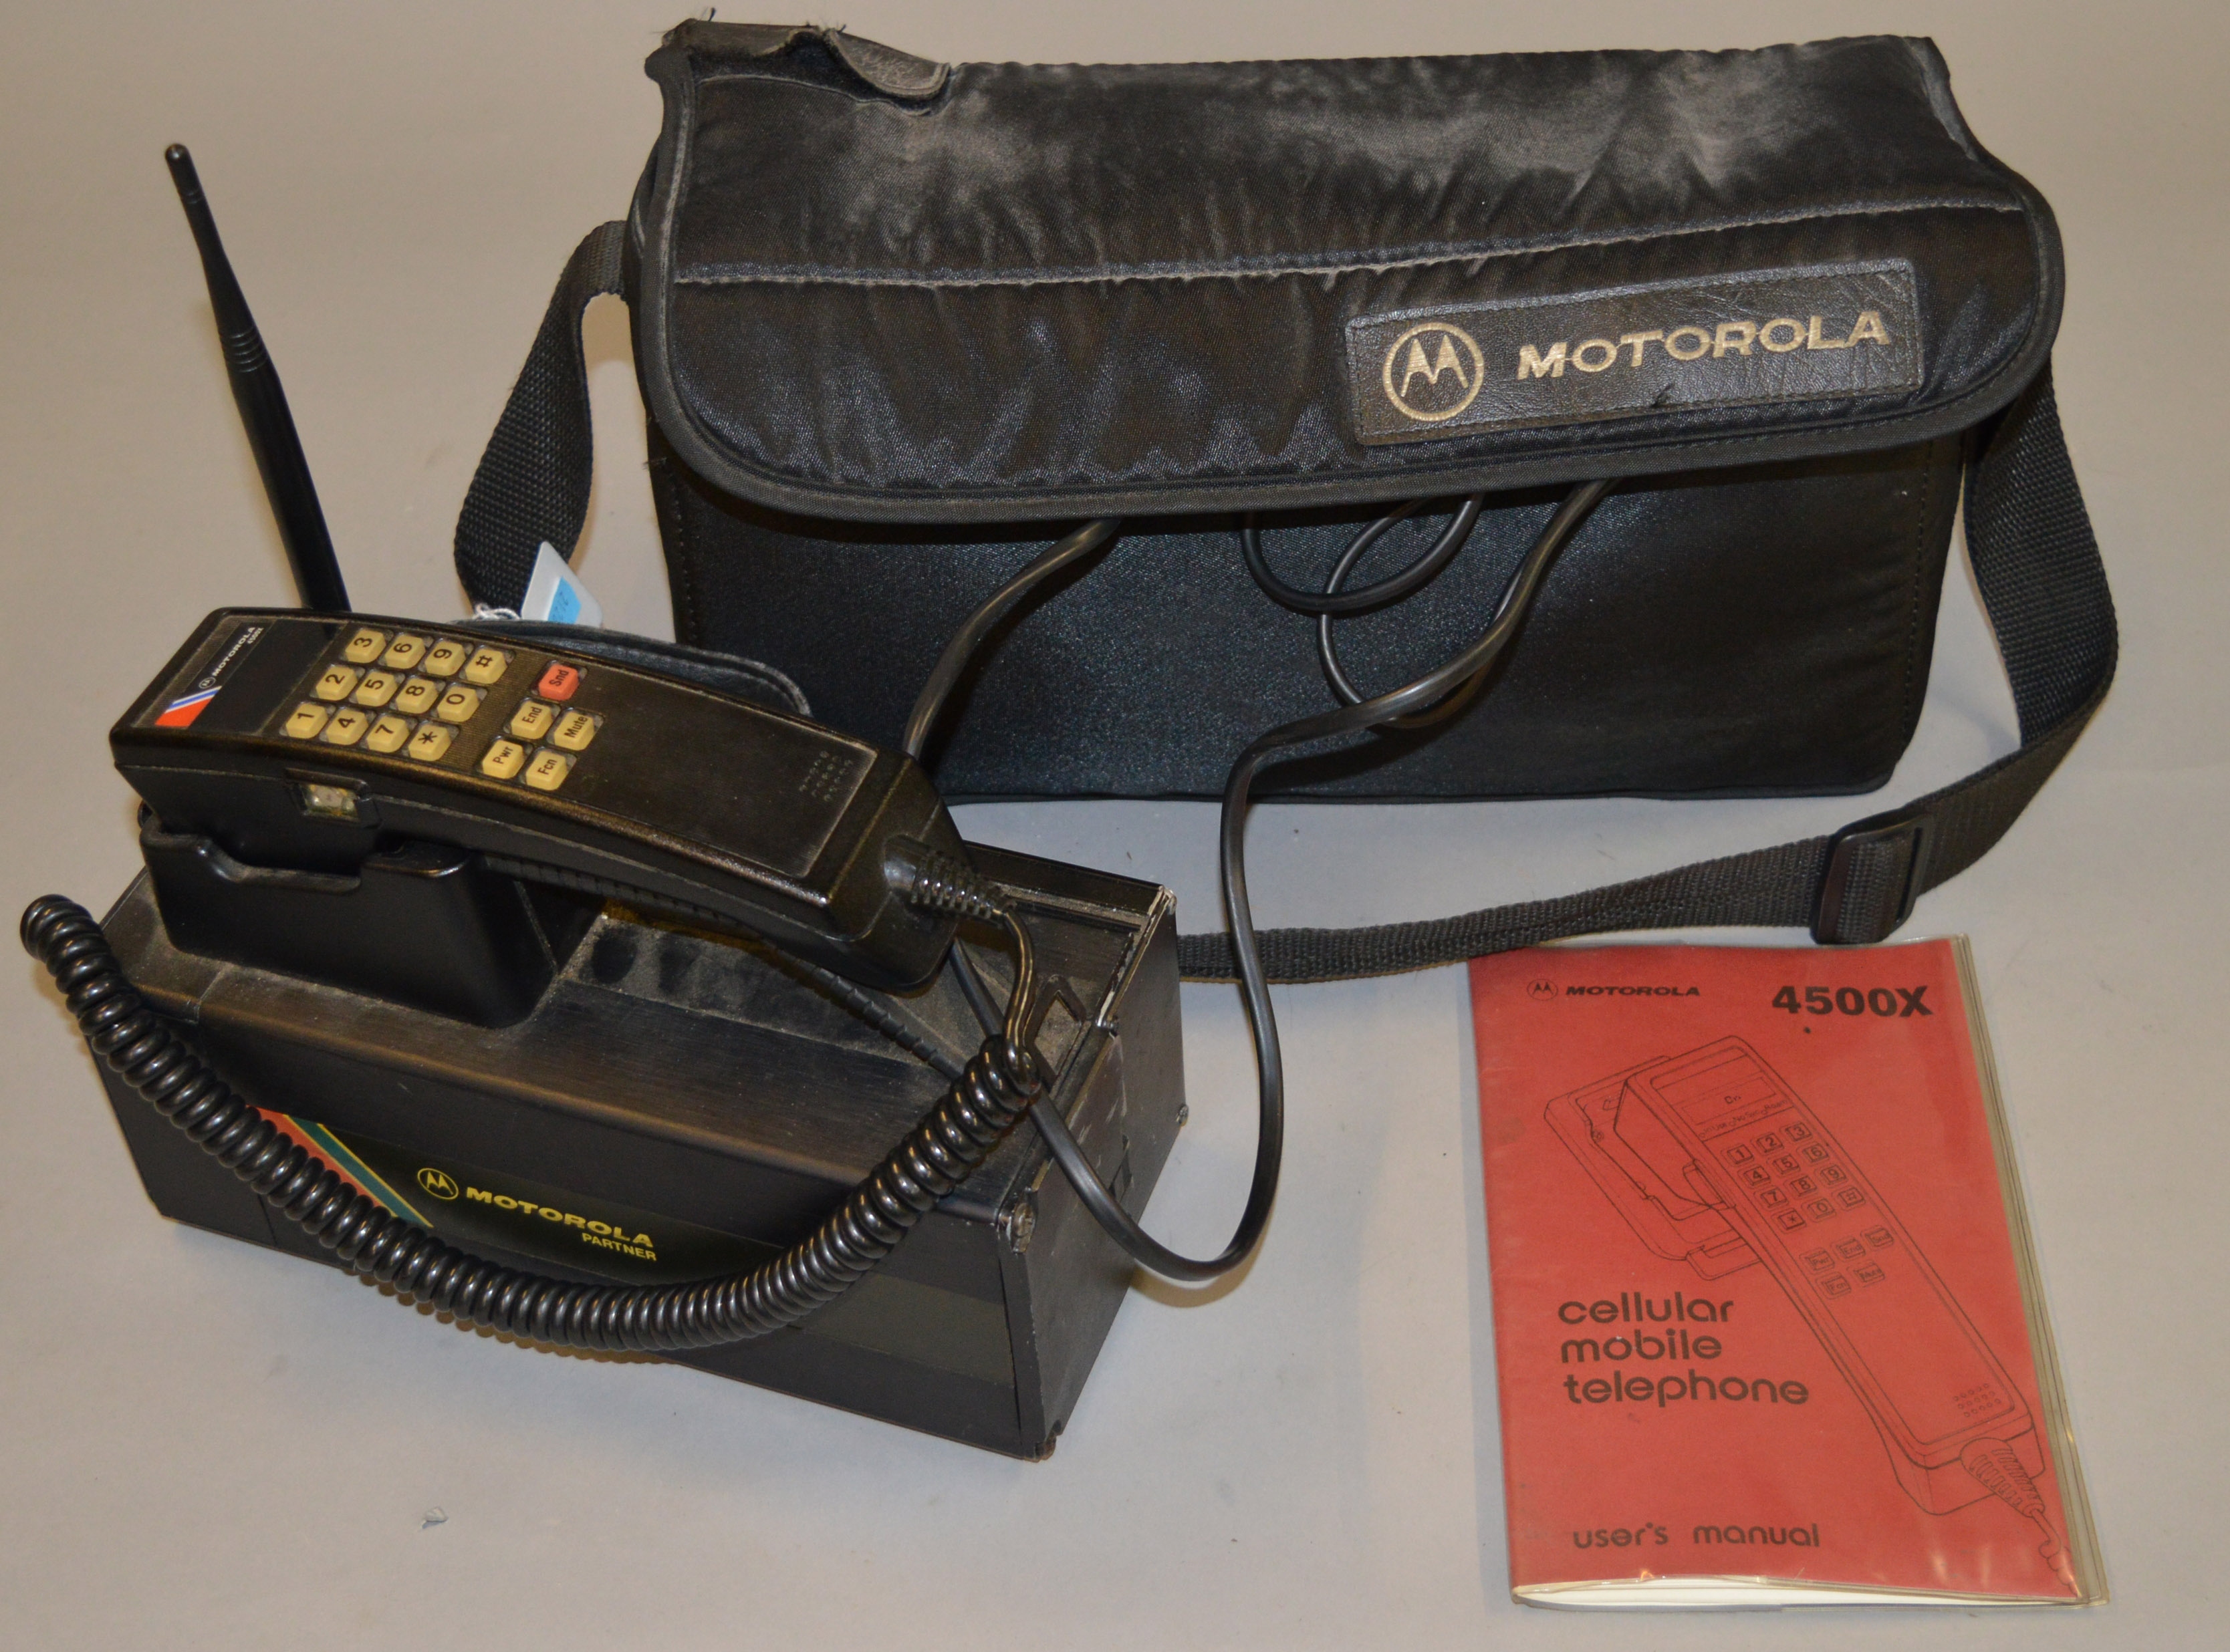 motorola 4500x. lot 170 - a motorola 4500x vintage cellular mobile telephone with case and instructions. 4500x 4